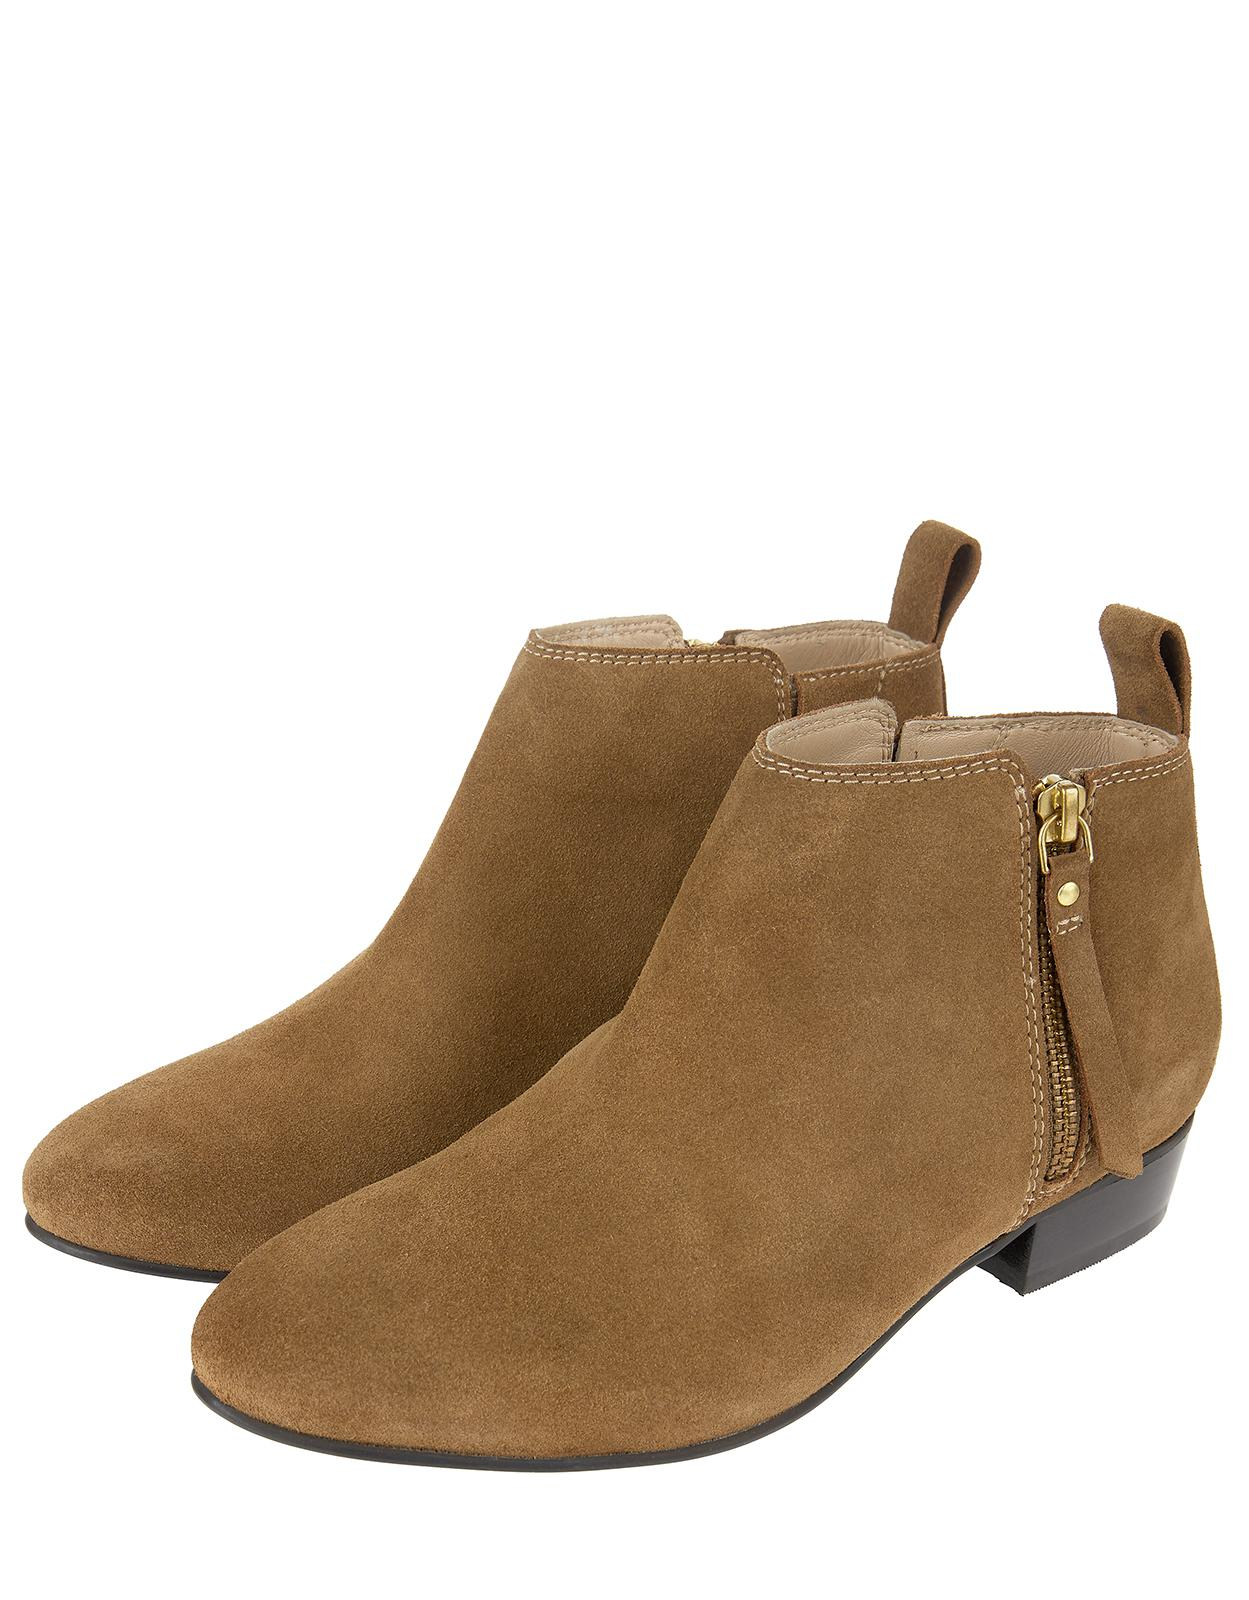 1636cdb361 Monsoon Lacey Low Cut Zip Suede Ankle Boots in Natural - Lyst